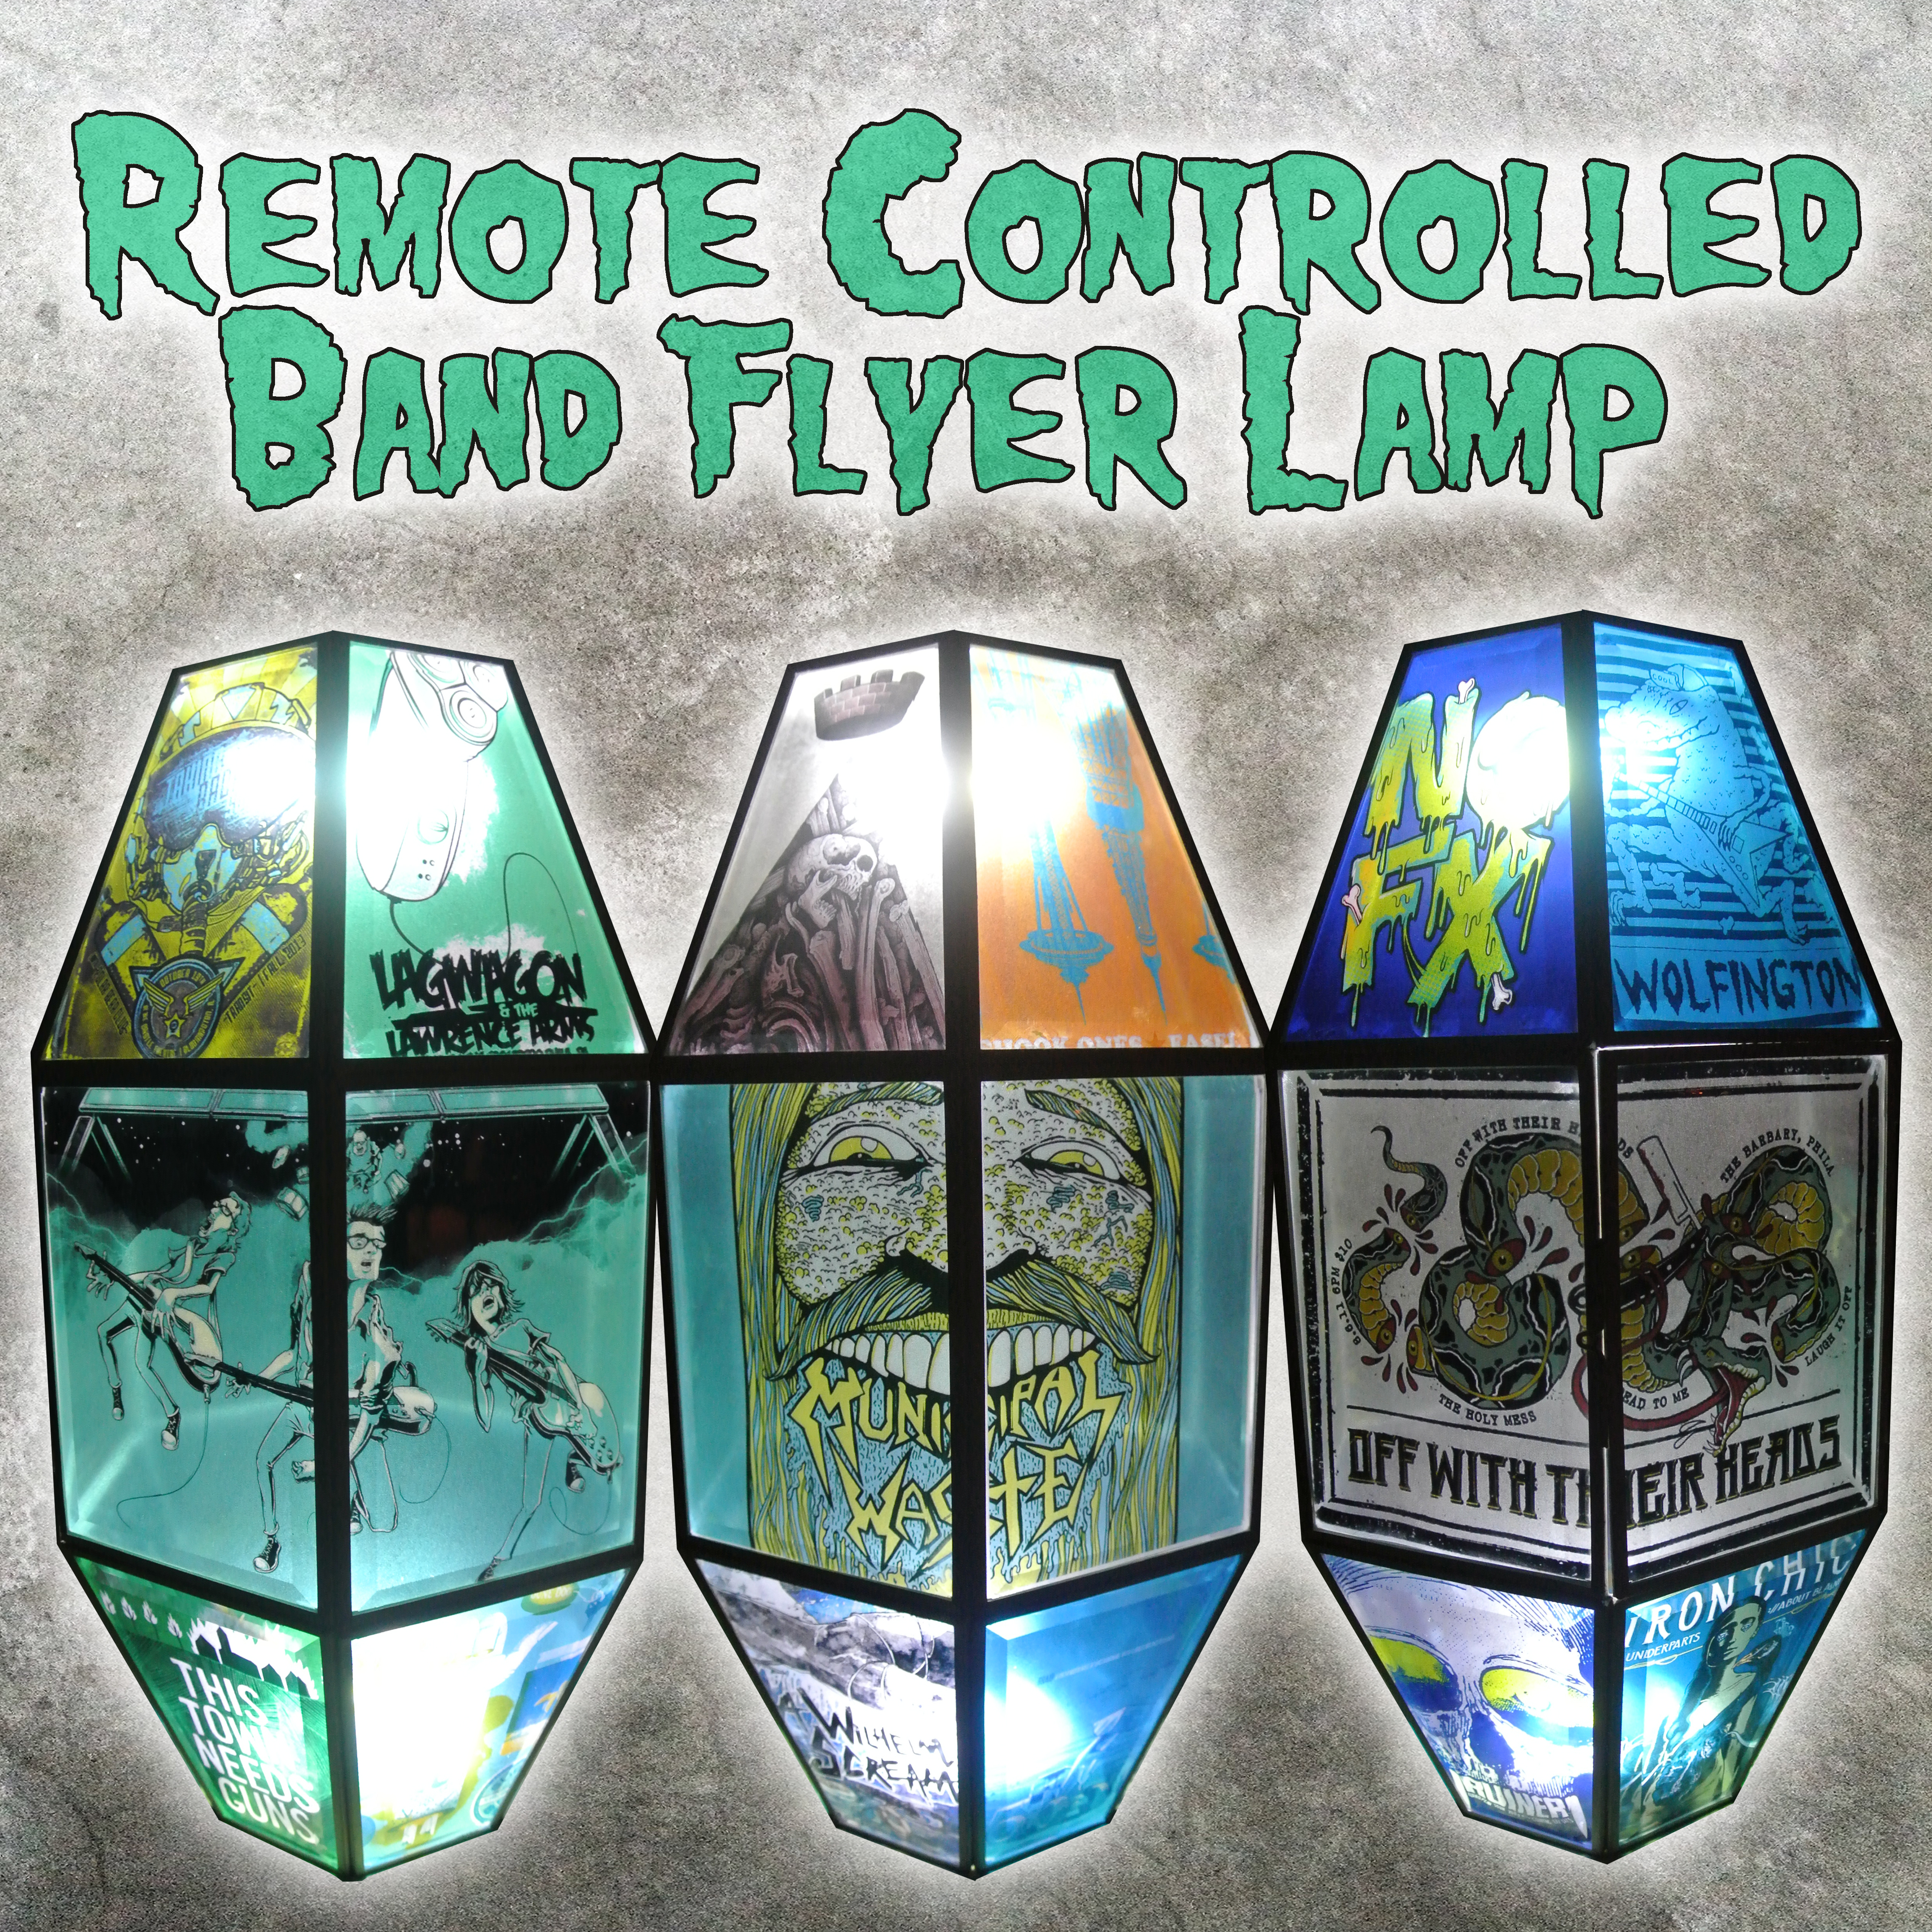 Picture of Remote Controlled Band Flyer Lamp